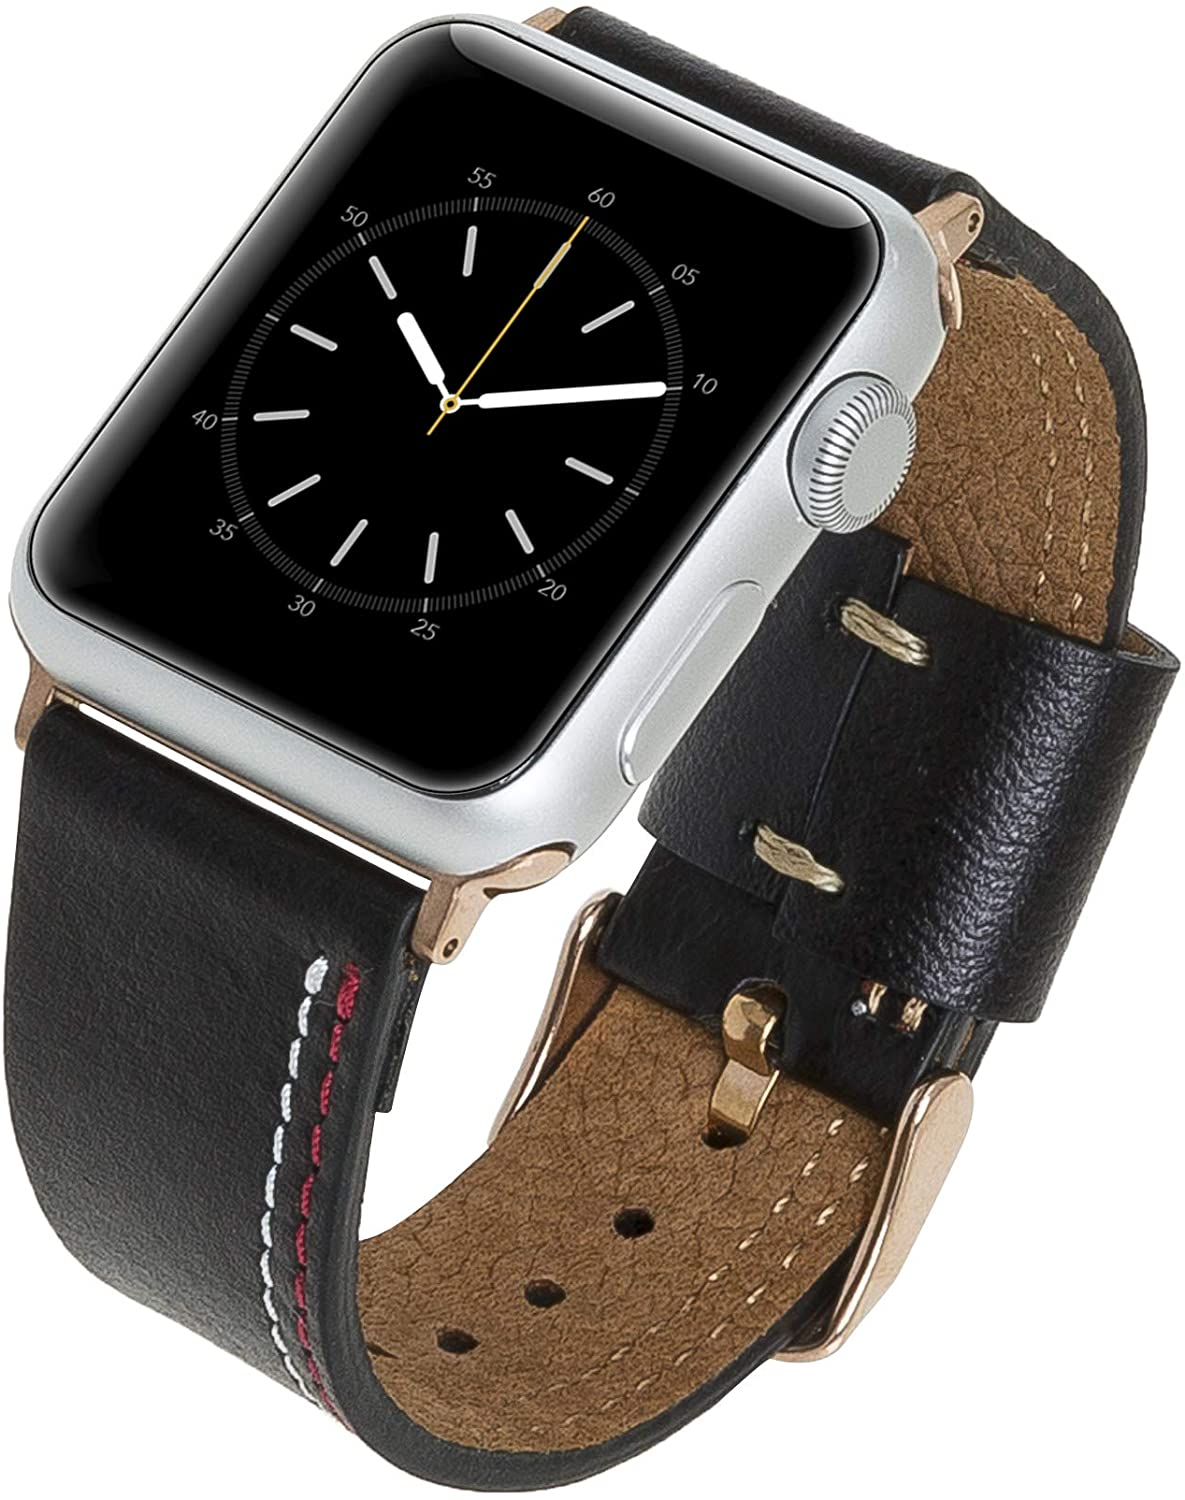 Venito Forio Handmade Premium Leather Watch Band Compatible with The Newest Apple Watch iwatch Series 5 as Well as Series 1, 2, 3, 4 (Rustic Black w/Rose Gold Stainless Steel Hardware, 42mm-44mm)